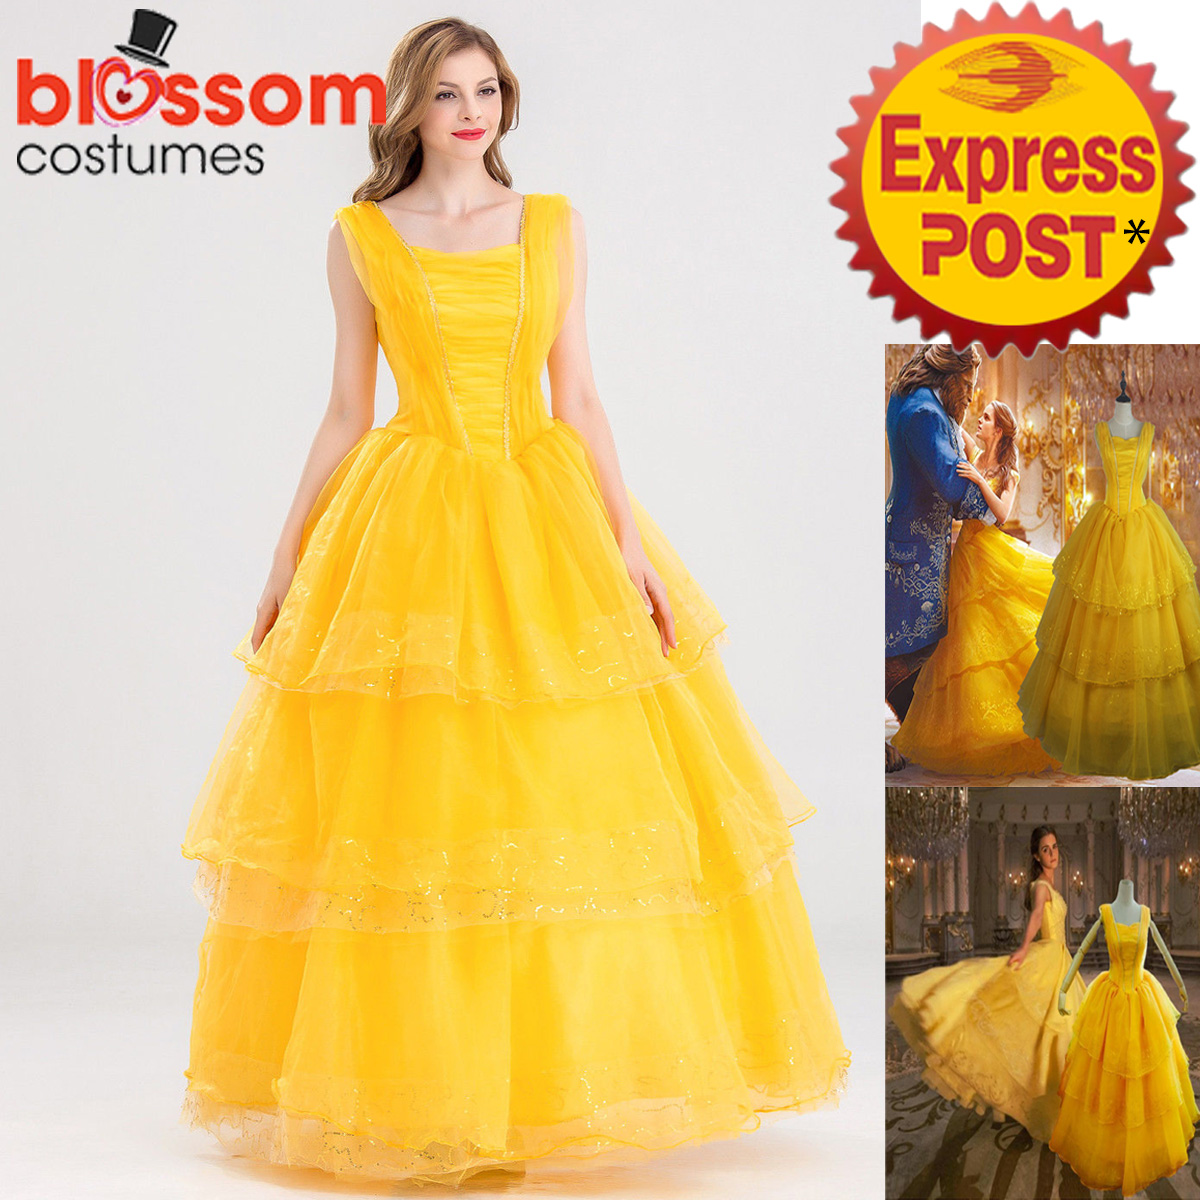 K381 Disney Belle Costume Beauty The Beast Movie Fancy Dress Gown ...